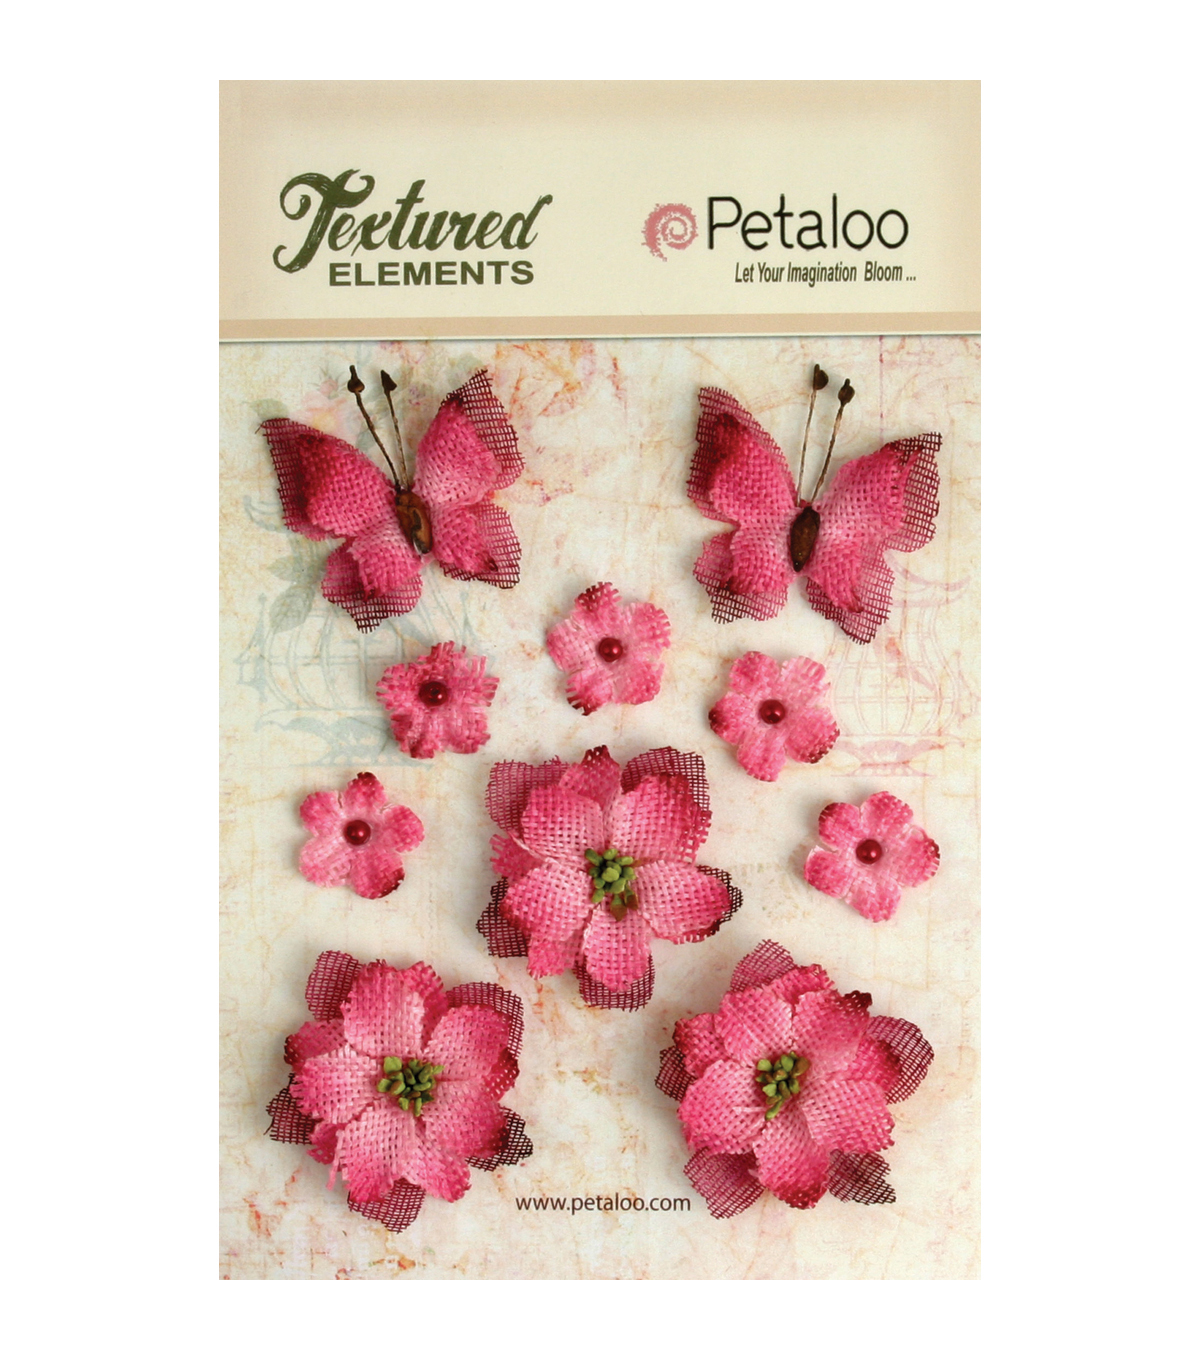 Petaloo Textured Elements Burlap Flowers/Butterflies Embellishments